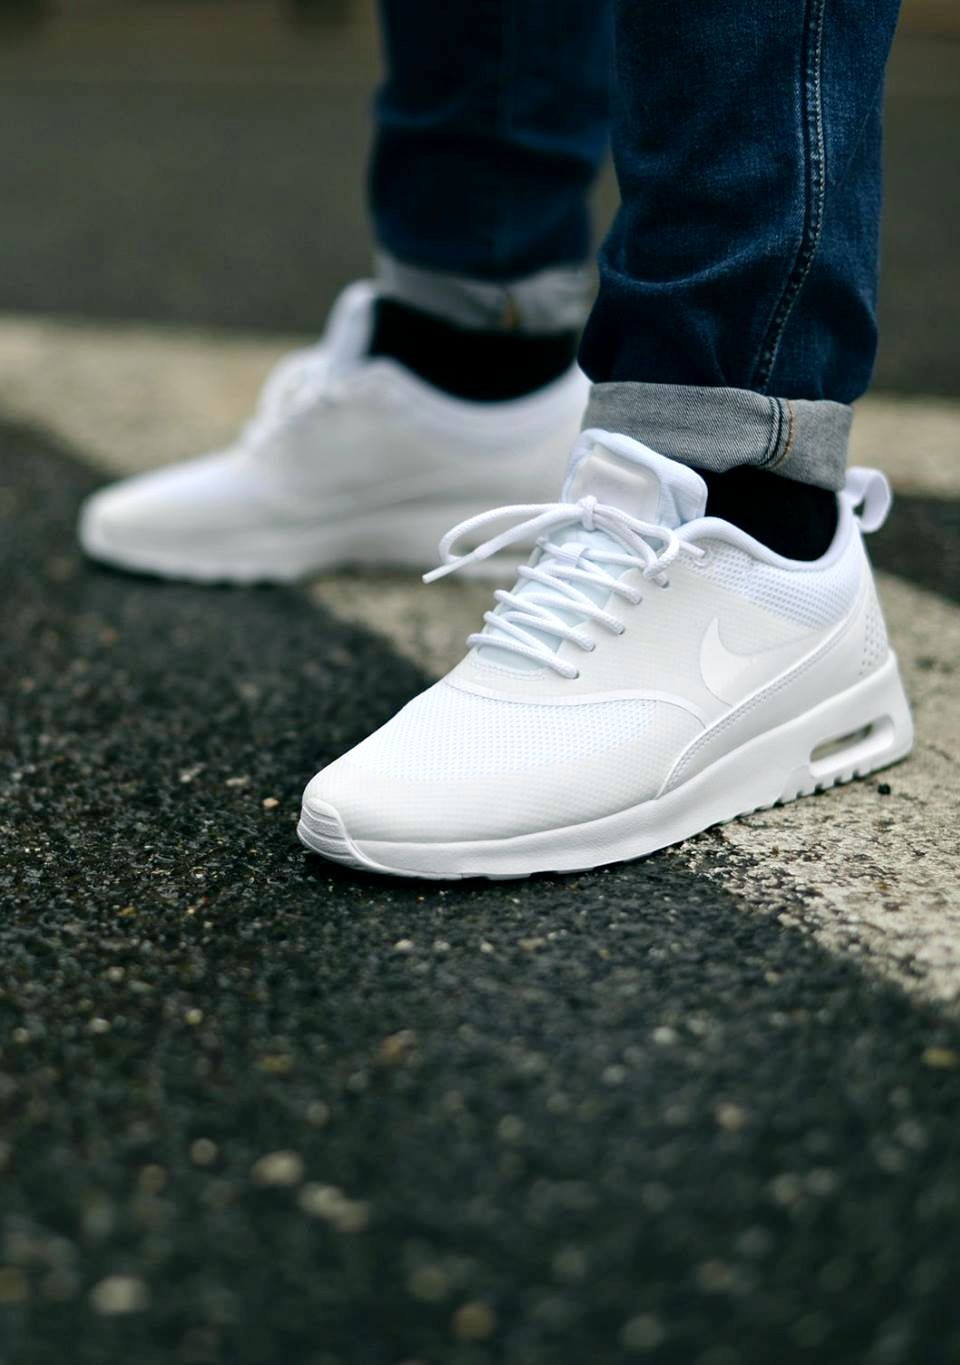 promo code 892bb 8cd78 Nike Air Max Thea  All White  via CHMIELNA 20 Buy it   CHMIELNA 20   Nike  US   Finishline   Footlocker